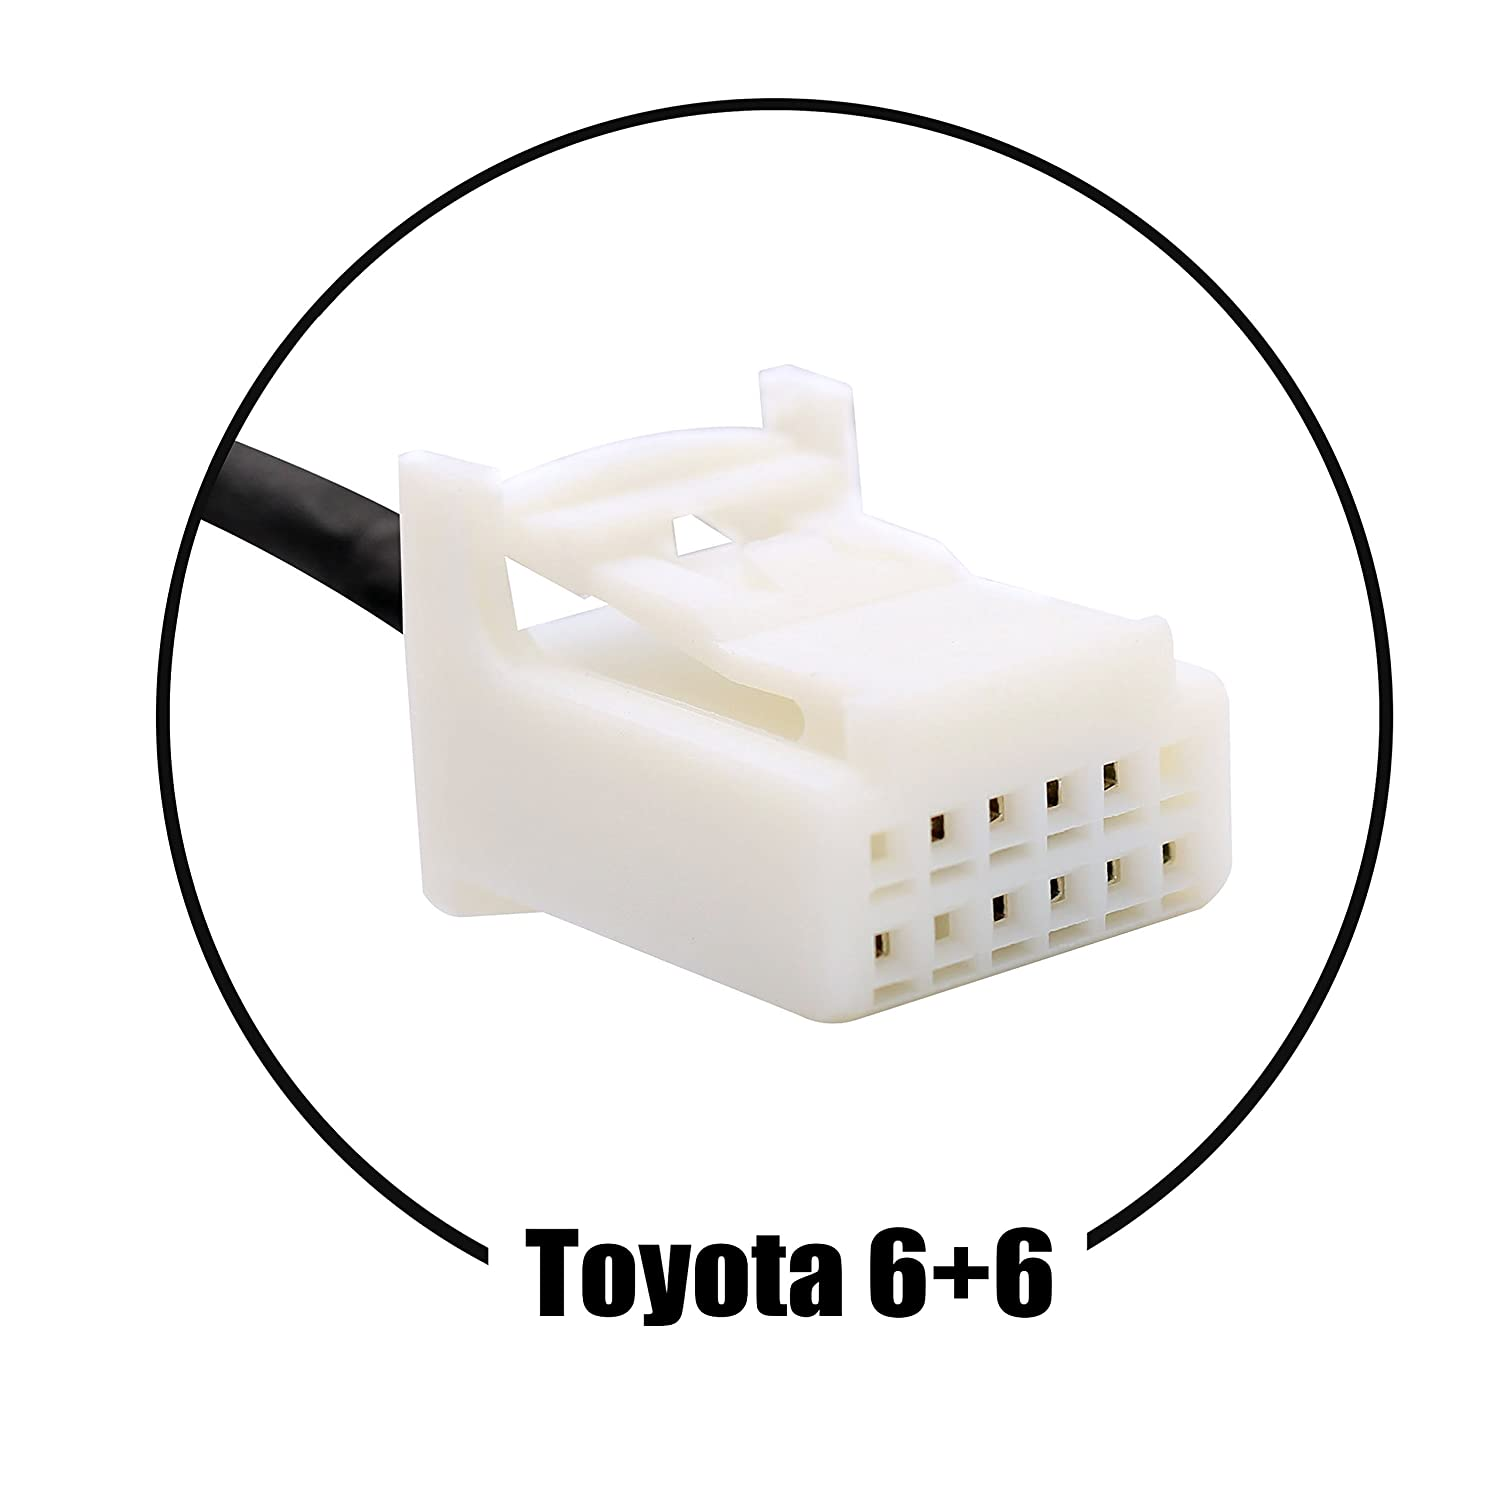 6+6 Auxillary Adapter,Wyness AUX Car MP3 Player Radio Interface AUX in Adapte 3.5mm for Toyota Camry Tacoma Corolla Tundra RAV4 Yaris Lexus RX330 GS300 IS220 Scions Xa XB TC 4350466291